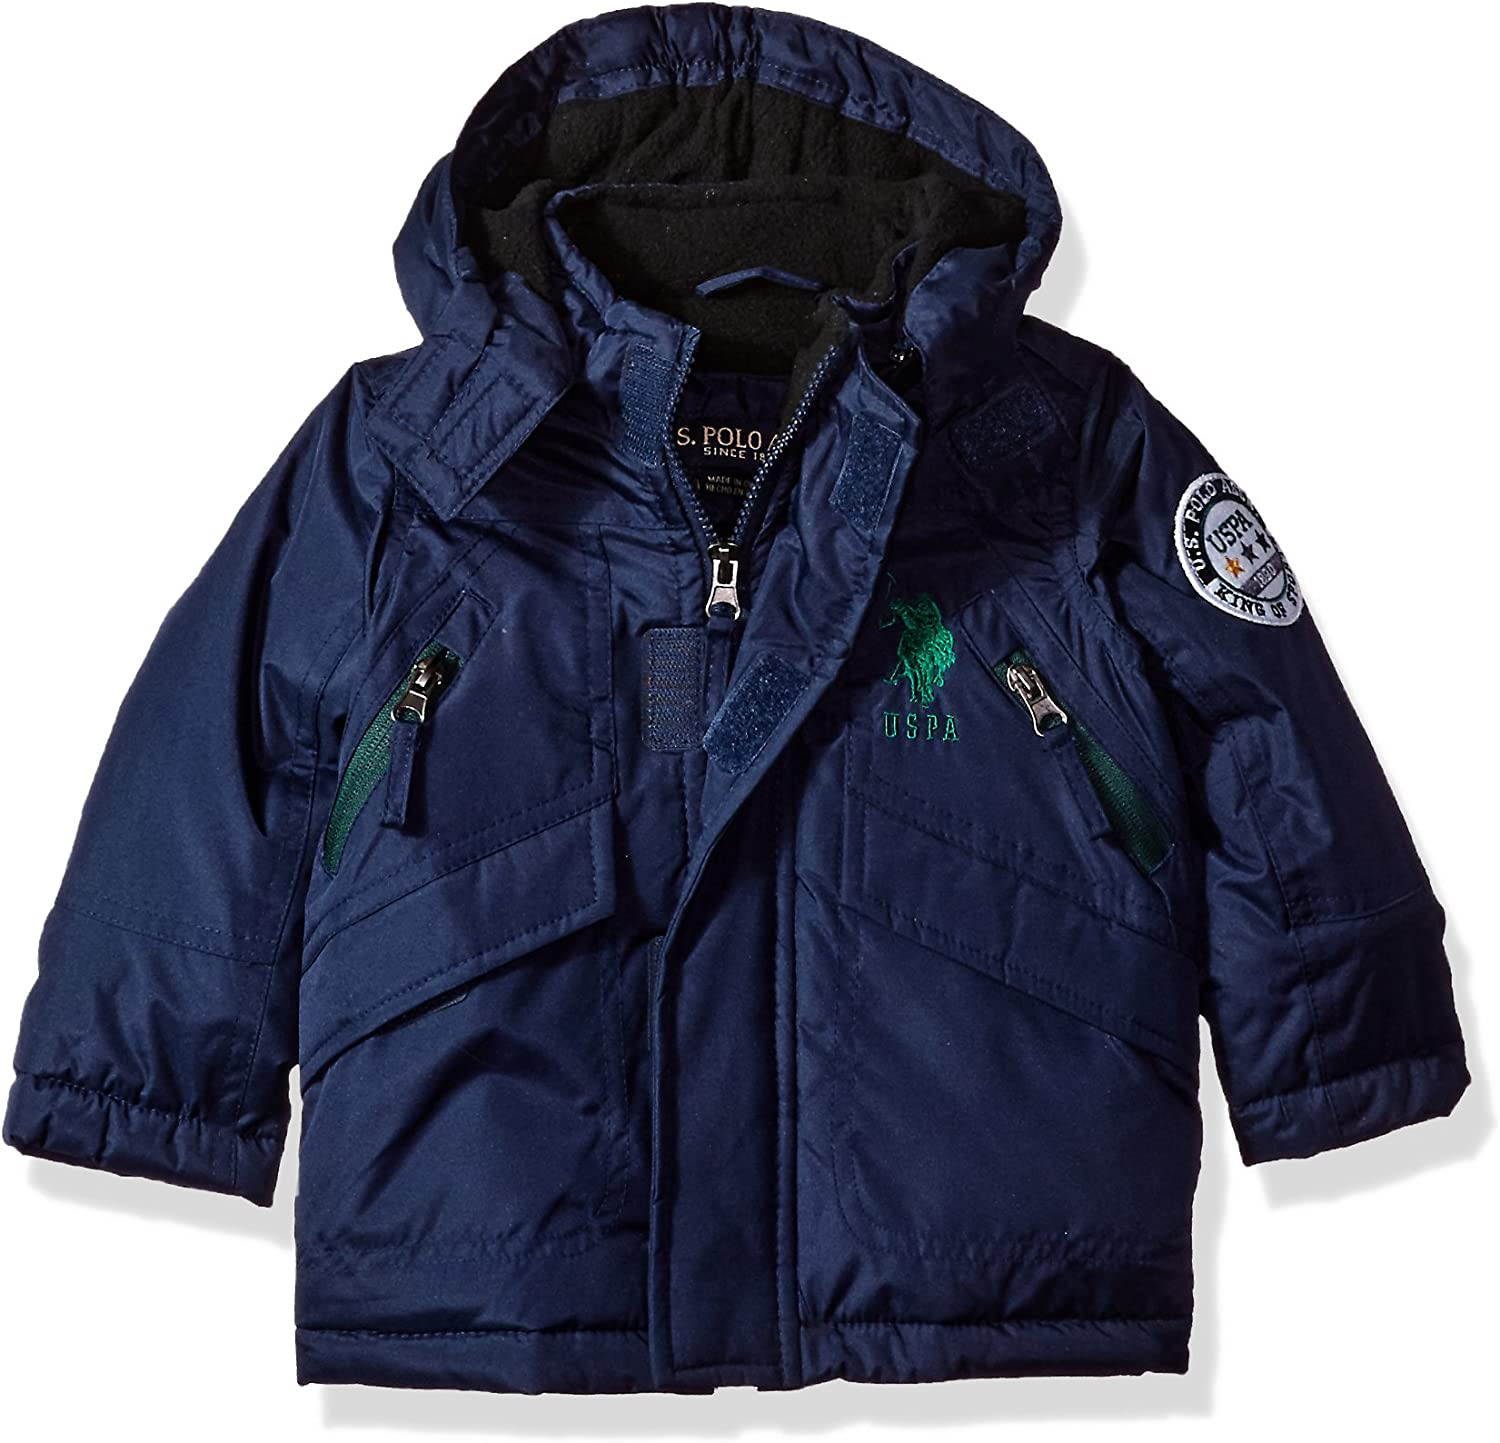 More Styles Available 24M US Polo Association Baby Boys Outerwear Jacket UC09-Navy